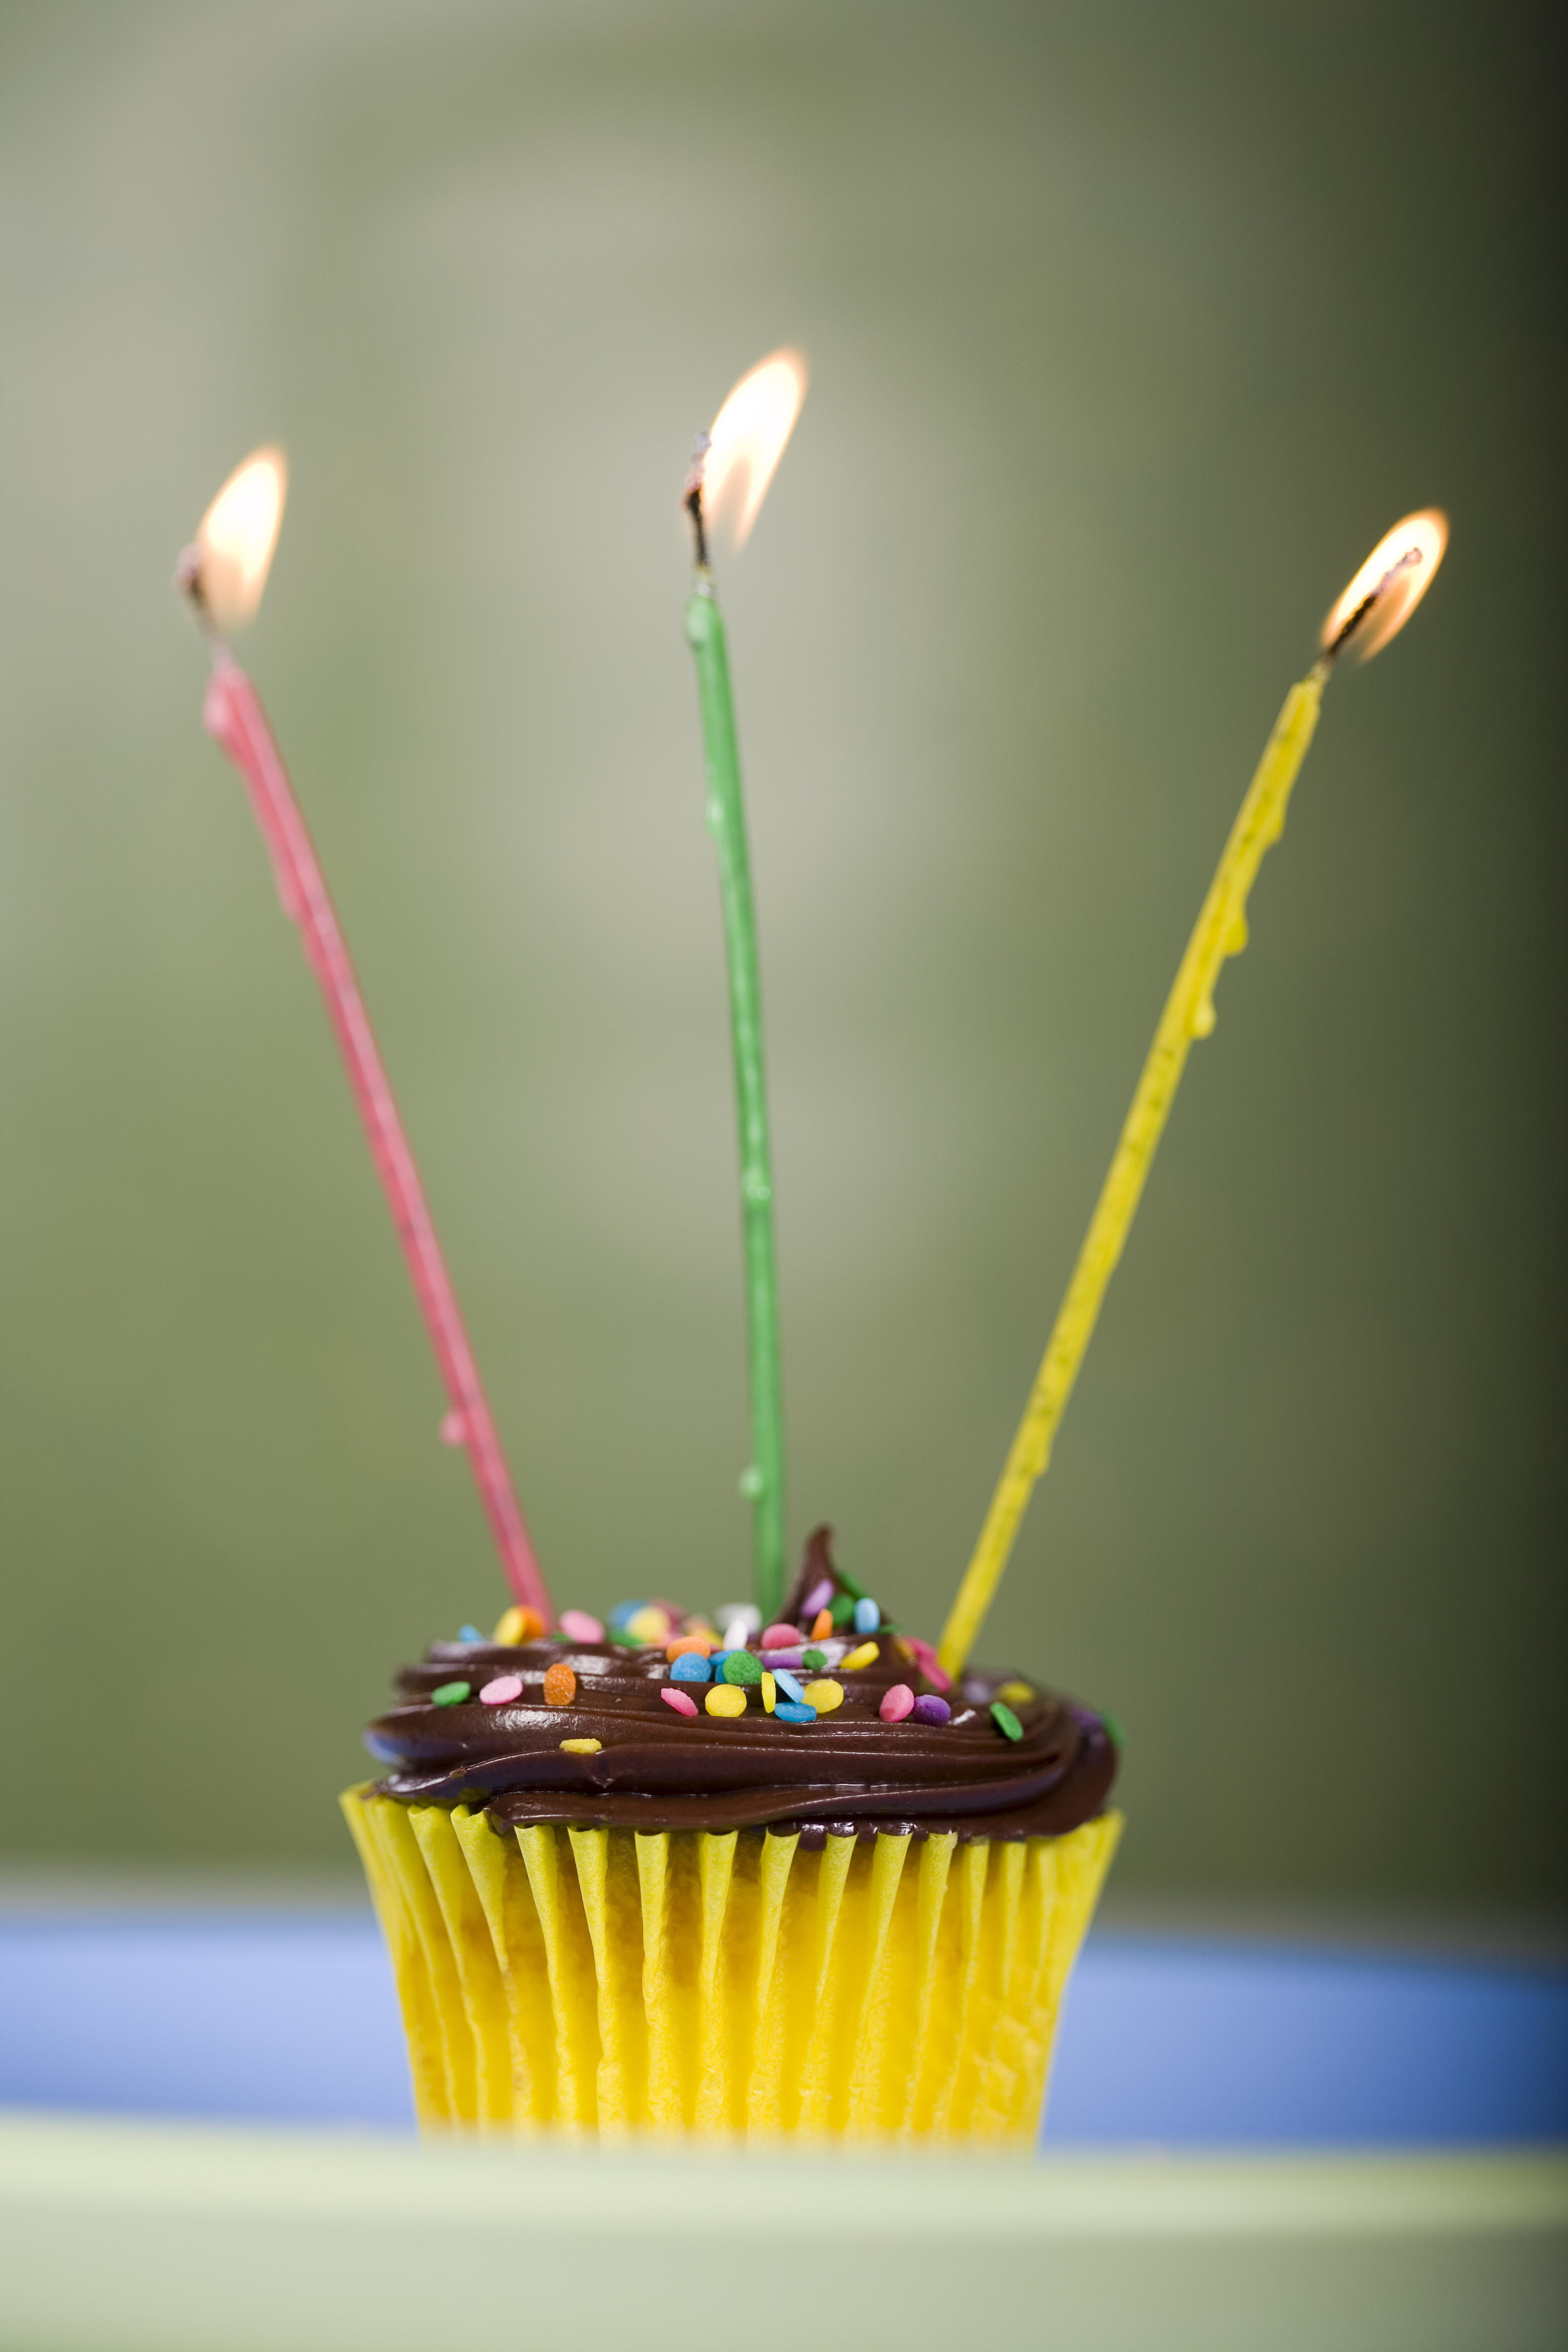 chocolate cupcake with three candles lit